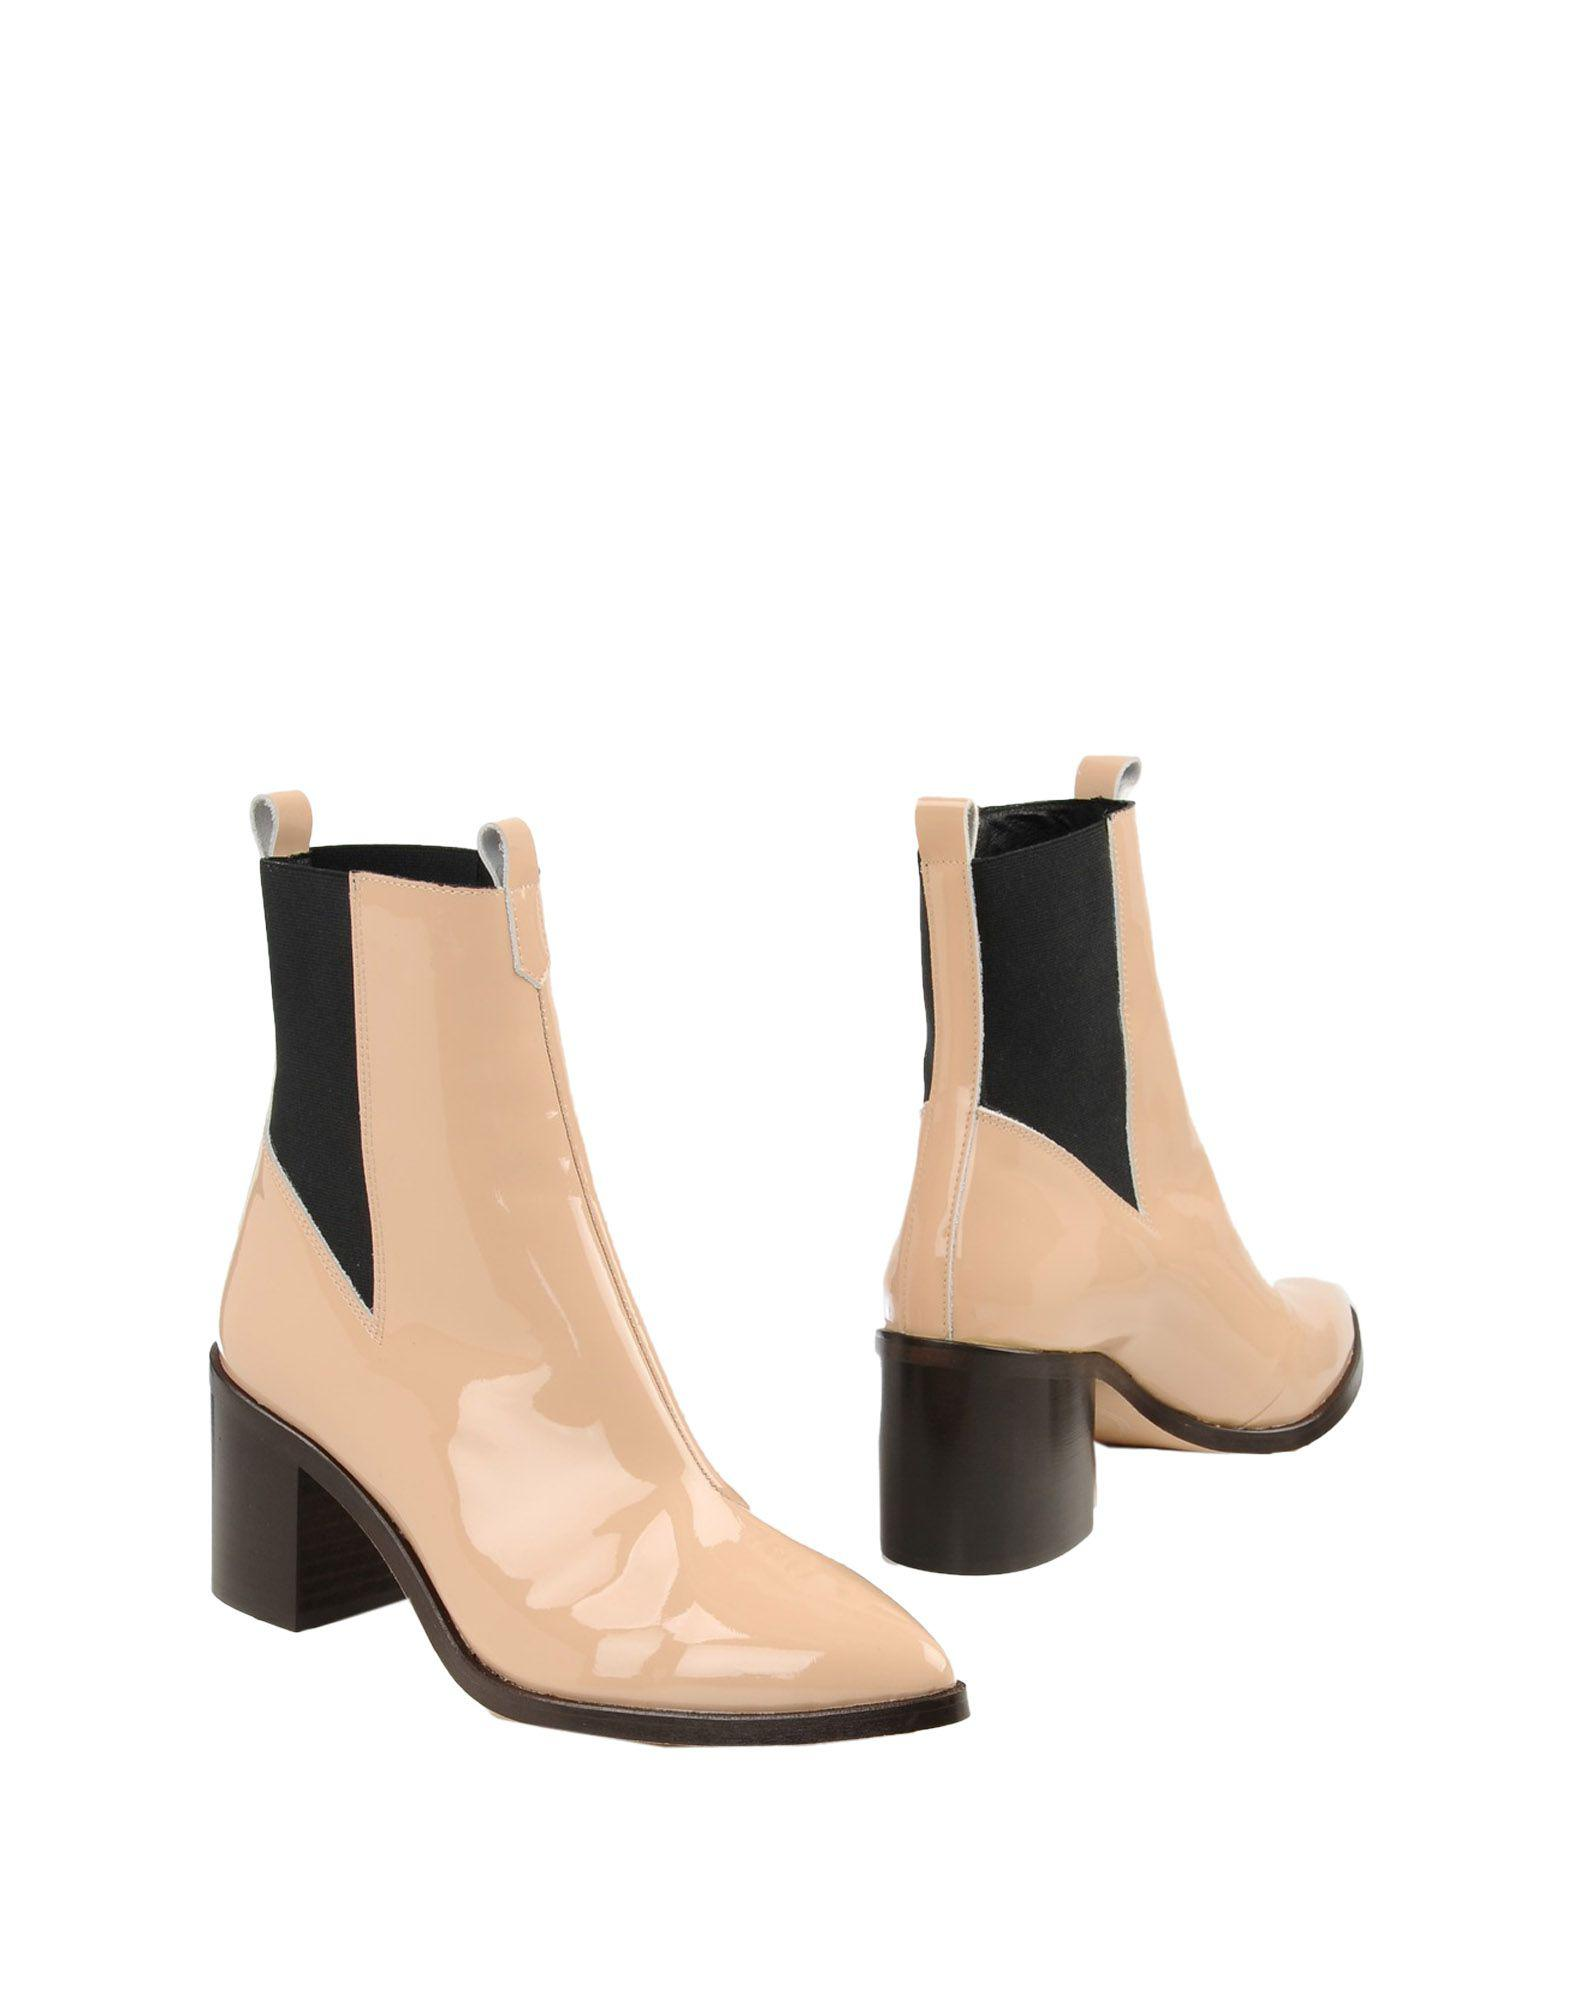 FOOTWEAR - Ankle boots MAISON SHOESHIBAR Outlet With Paypal cf9dk9R